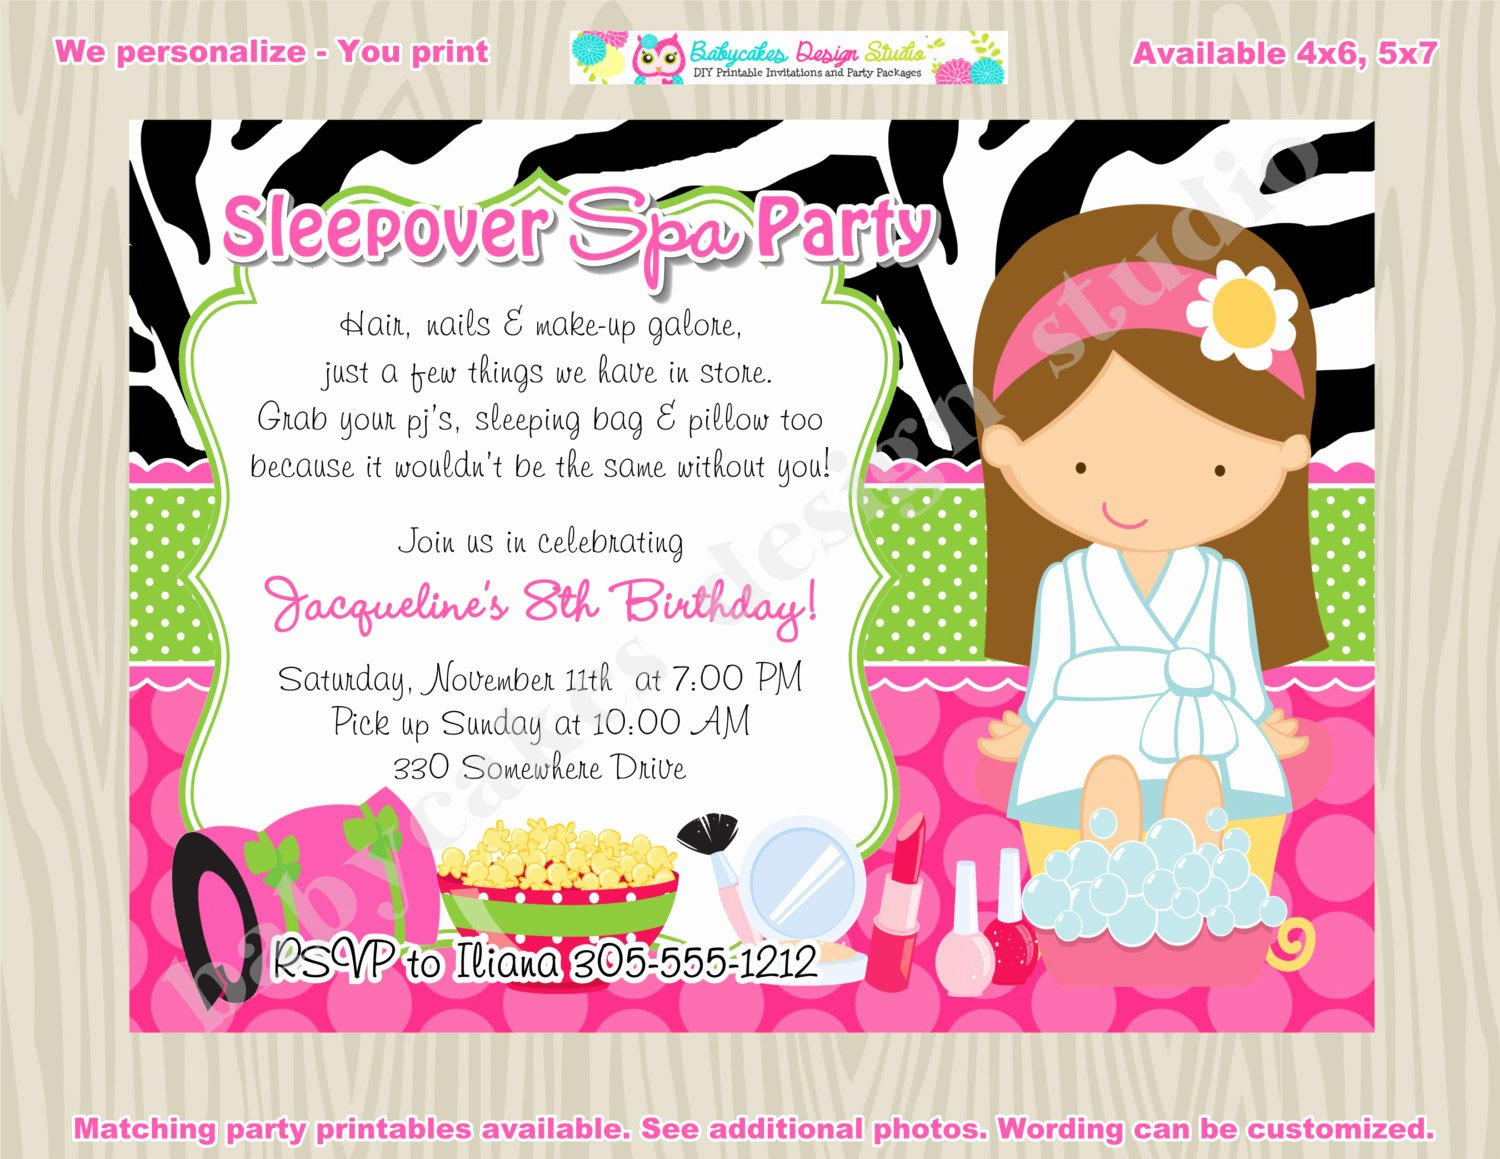 Spa Party Invitation Wording Best Of Sleepover Spa Party Invitation Spa Sleepover Invitation Invite